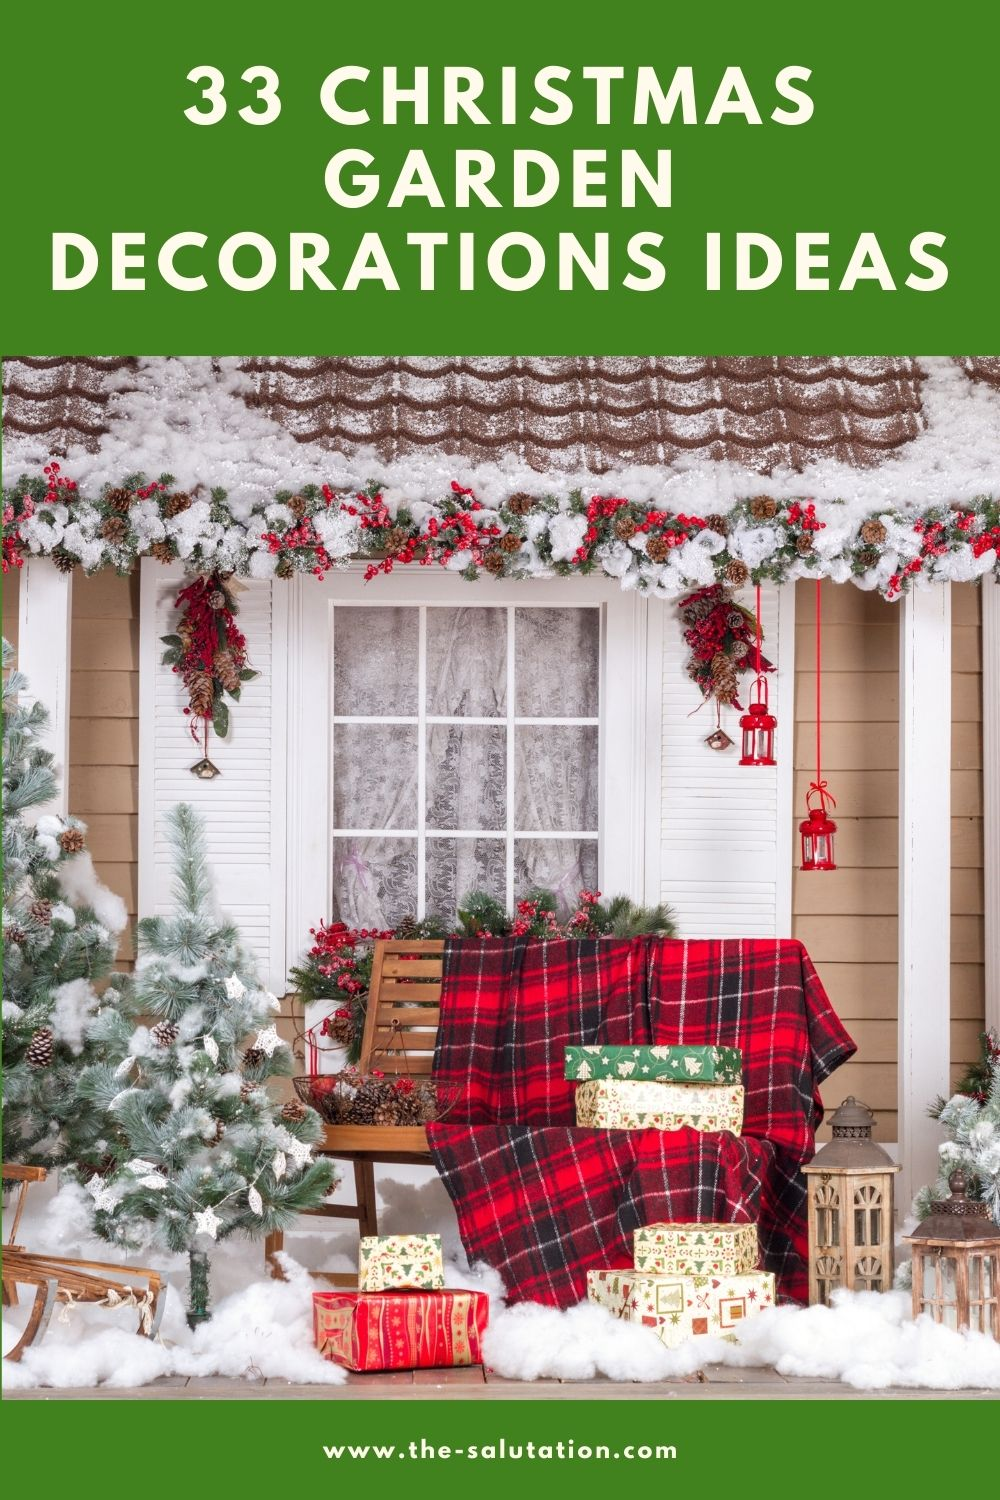 33 Christmas Garden Decorations Ideas 1